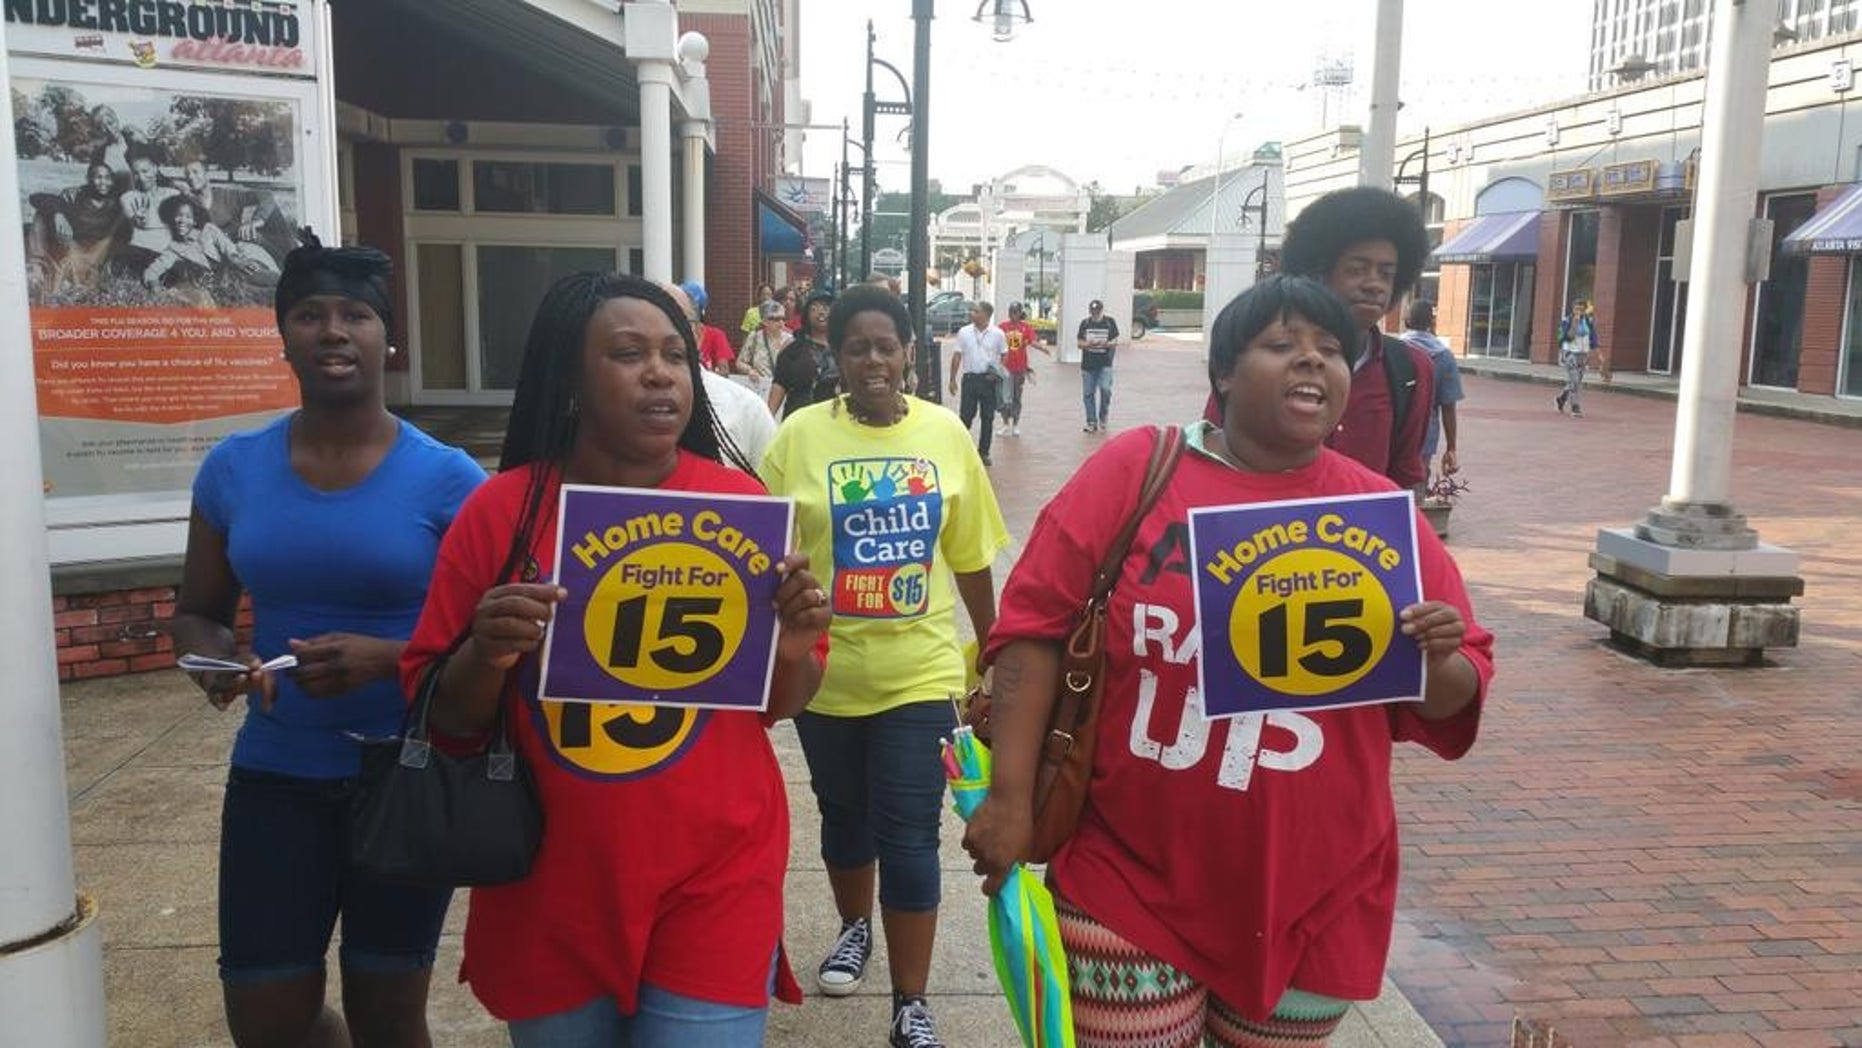 Workers in New York declared victory this summer, when Gov. Andrew Cuomo announced a plan to raise the state minimum wage to $15. (Fight for15.org)